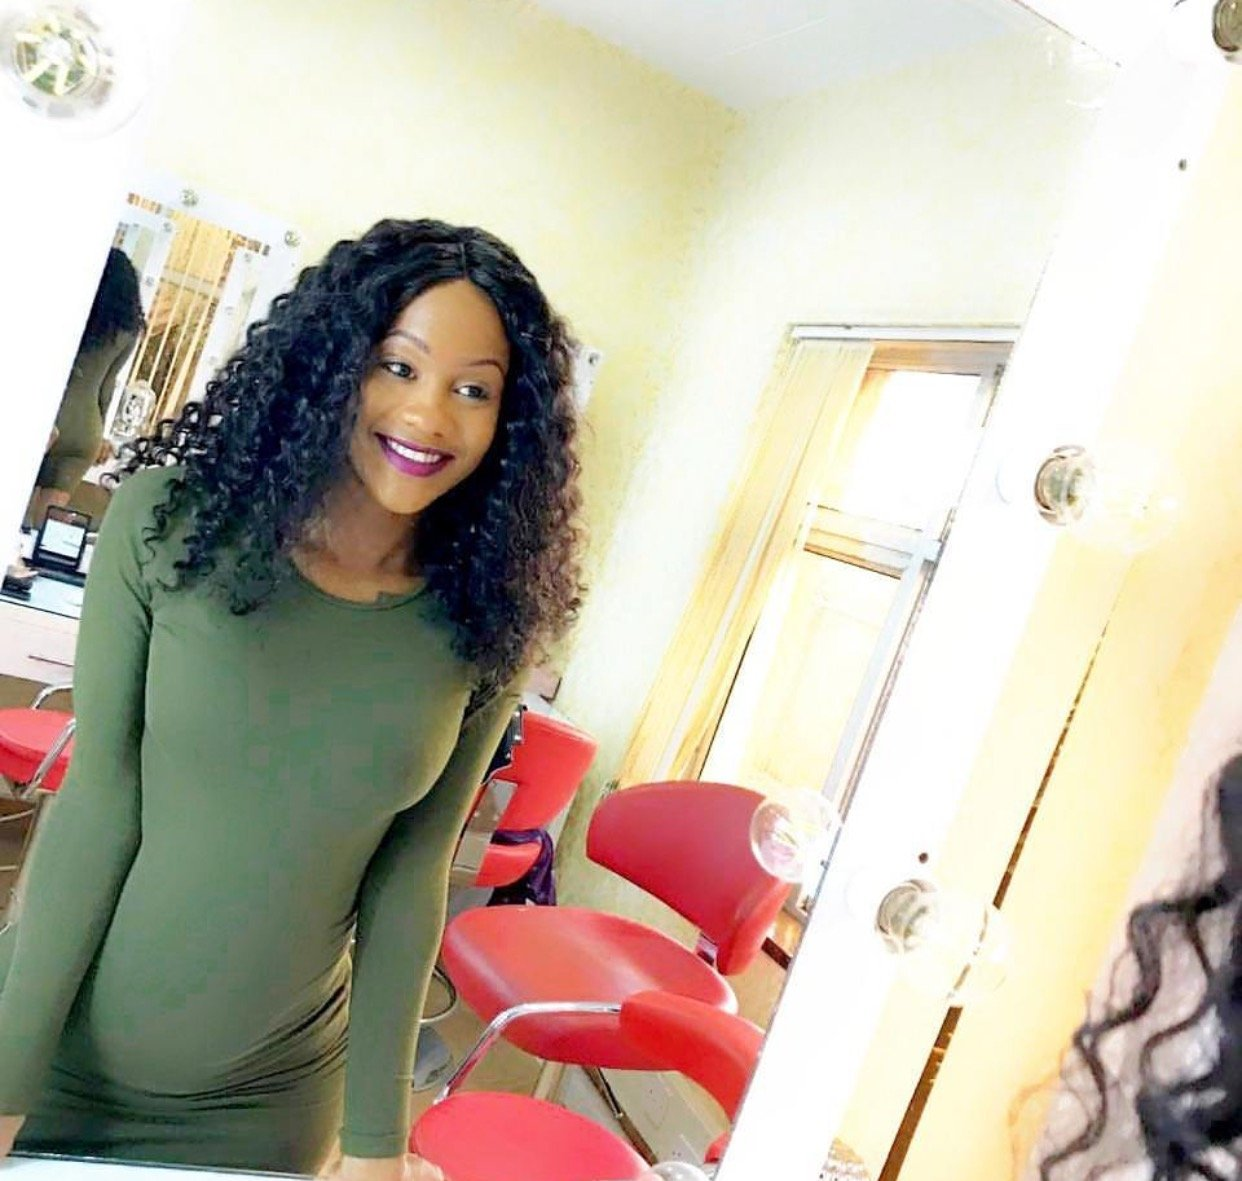 Baby onboard: Prezzo's ex girlfriend flaunts her growing baby bump for the first time